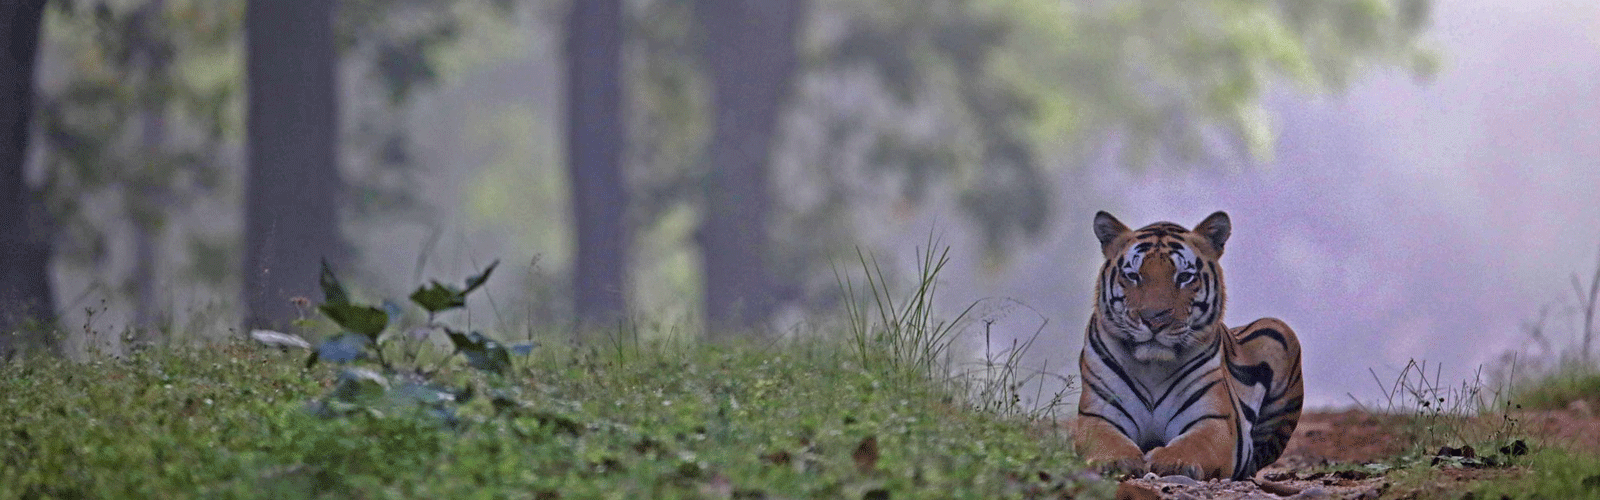 tiger lying in the forest